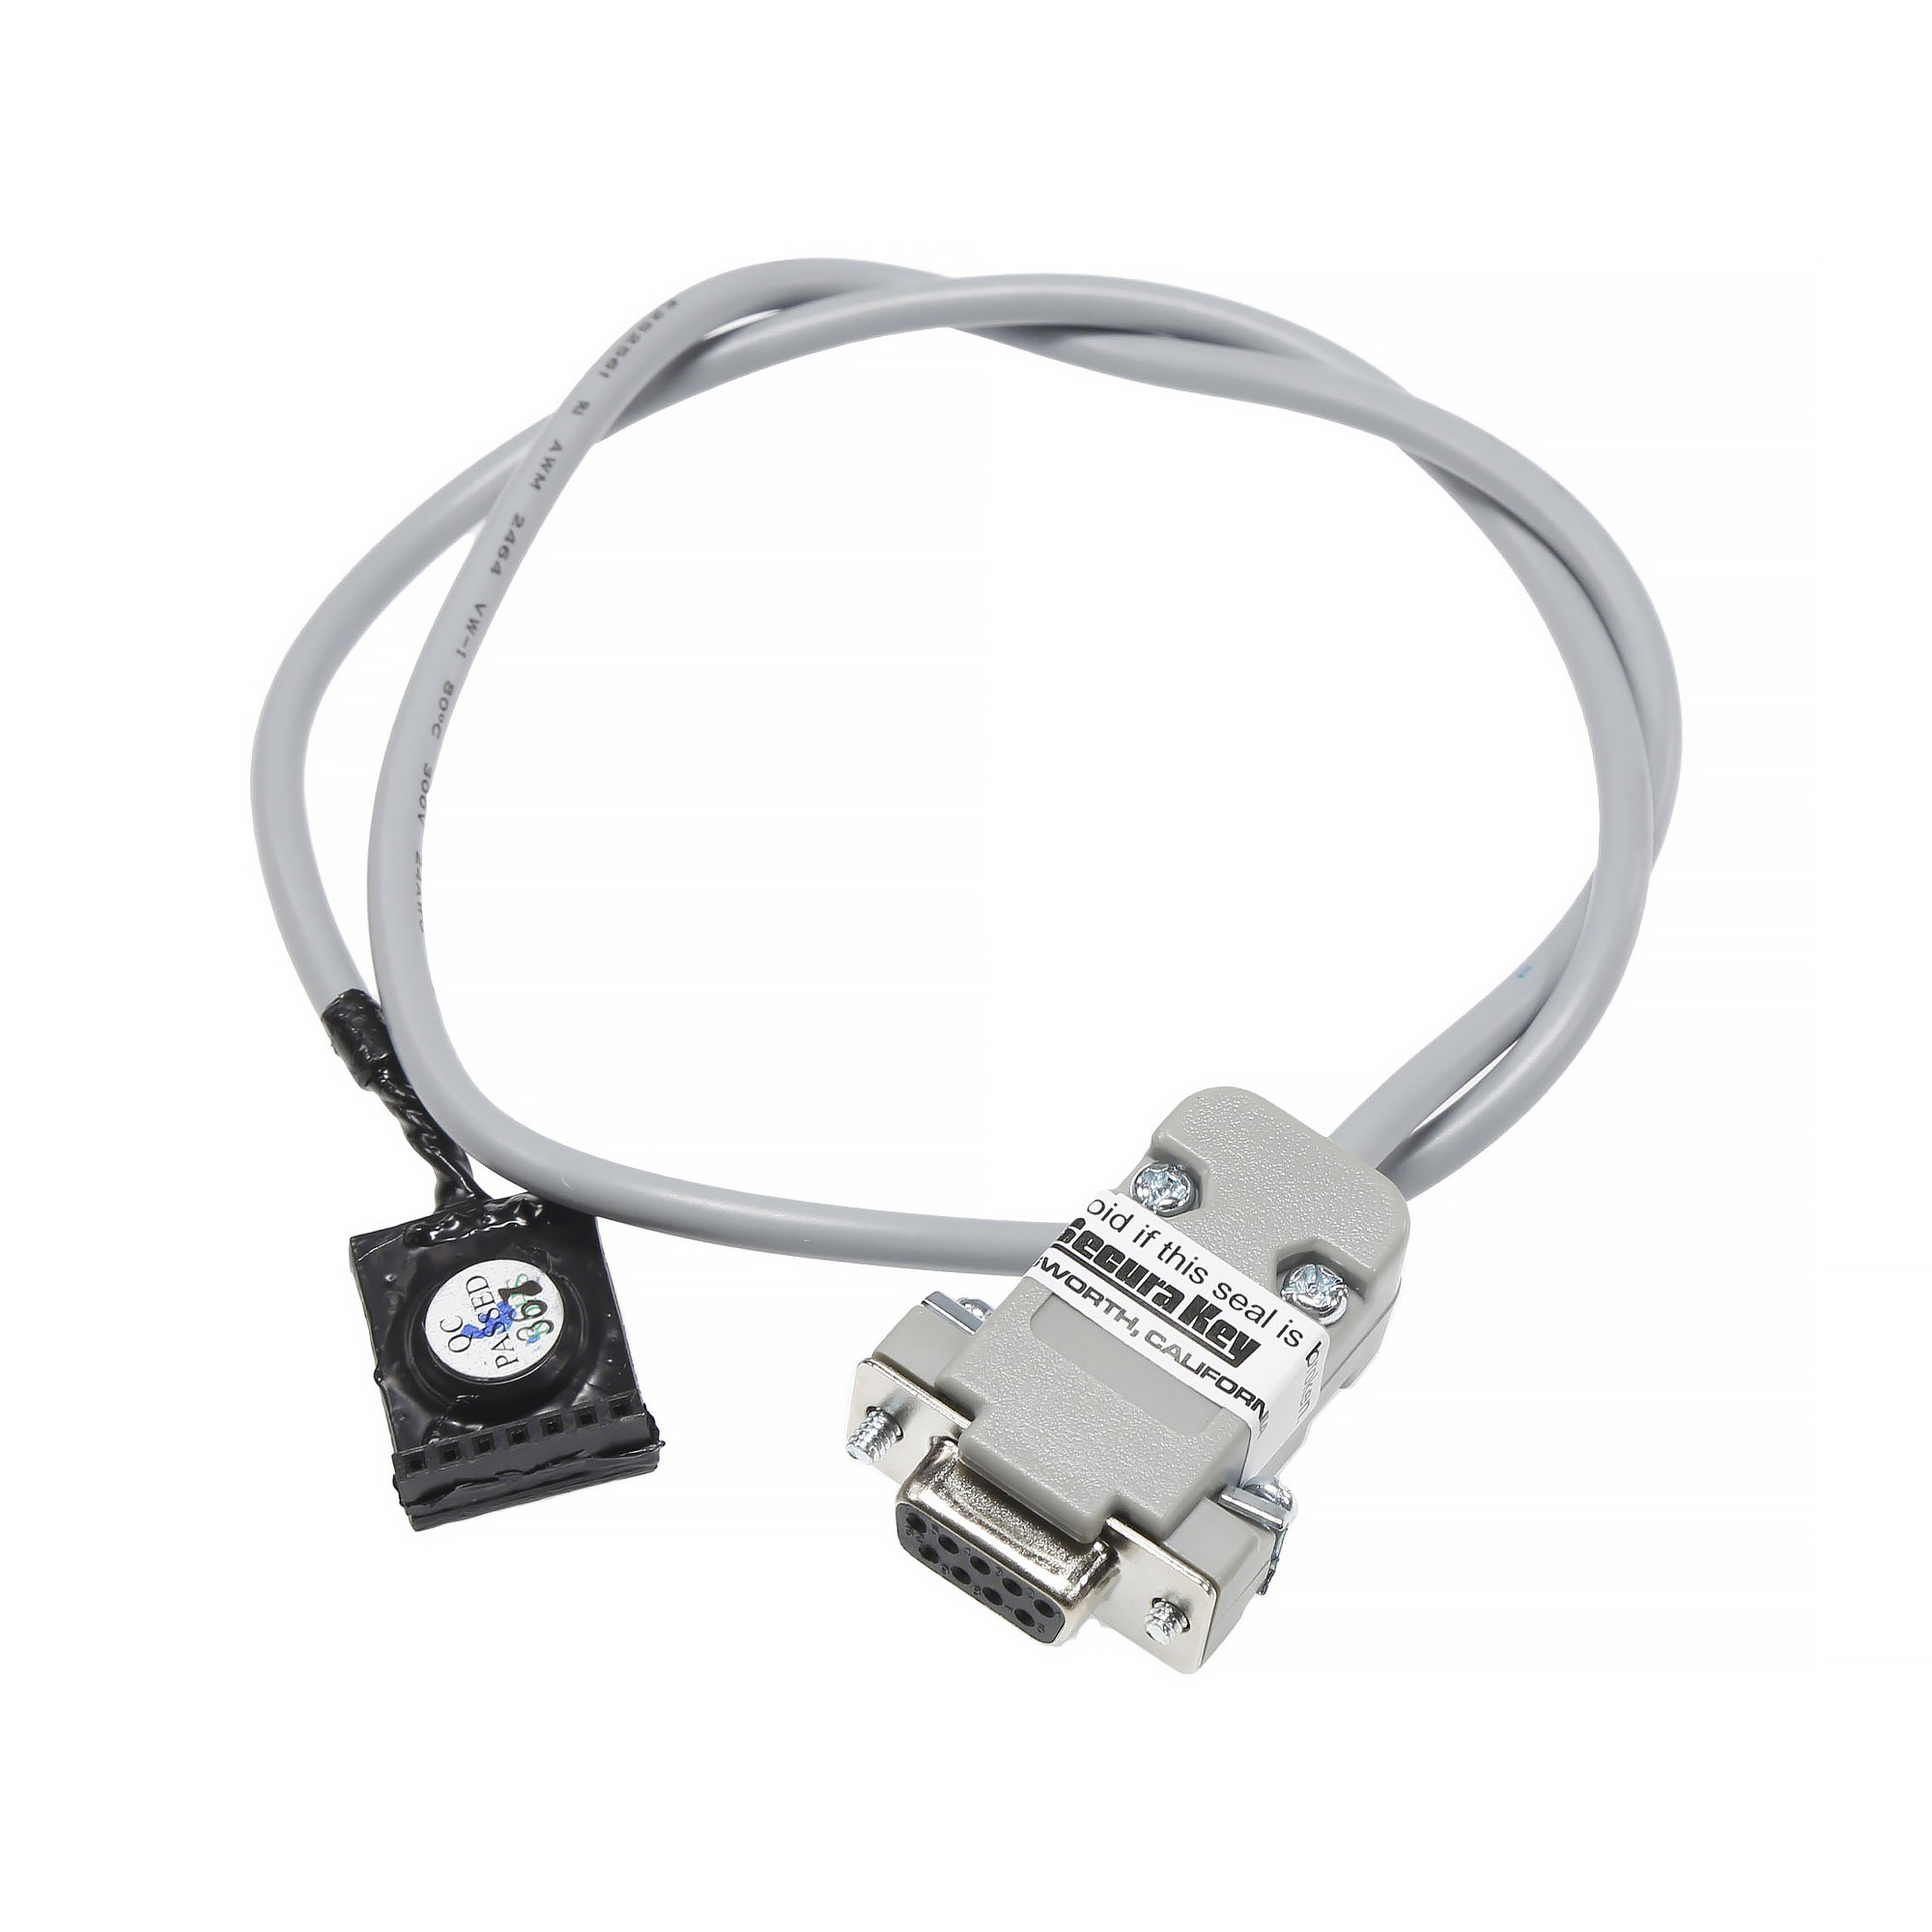 Shop SecuraKey Access Control Replacement Parts and Accessories